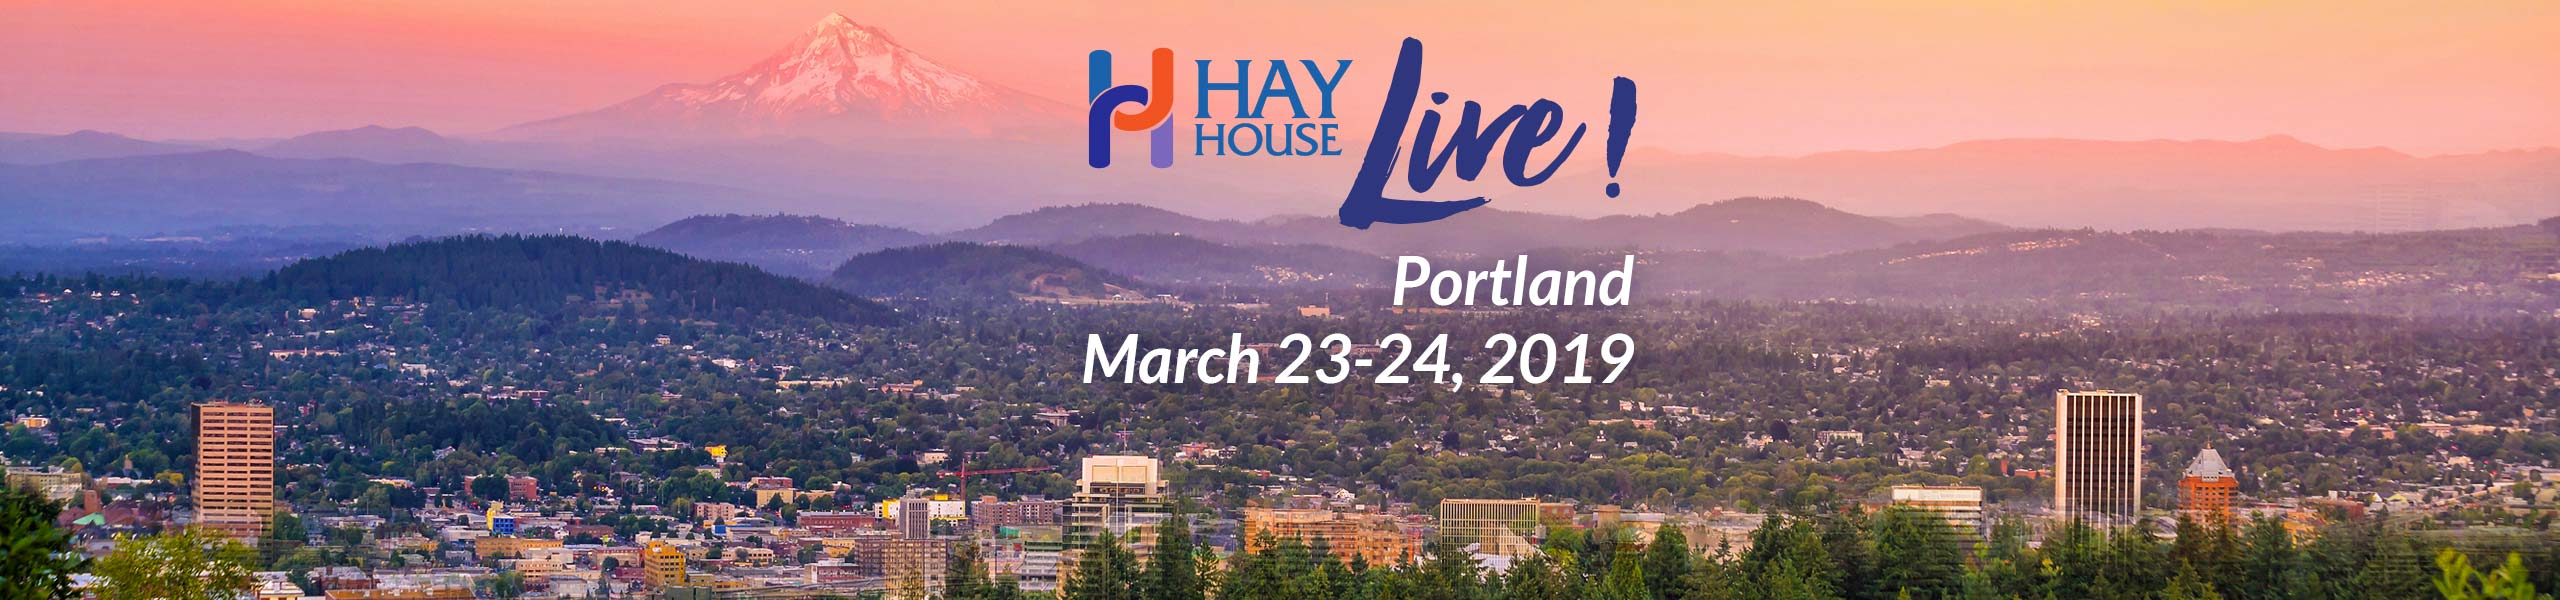 Hay House Live! Portland 2019 - Rebecca Cambell